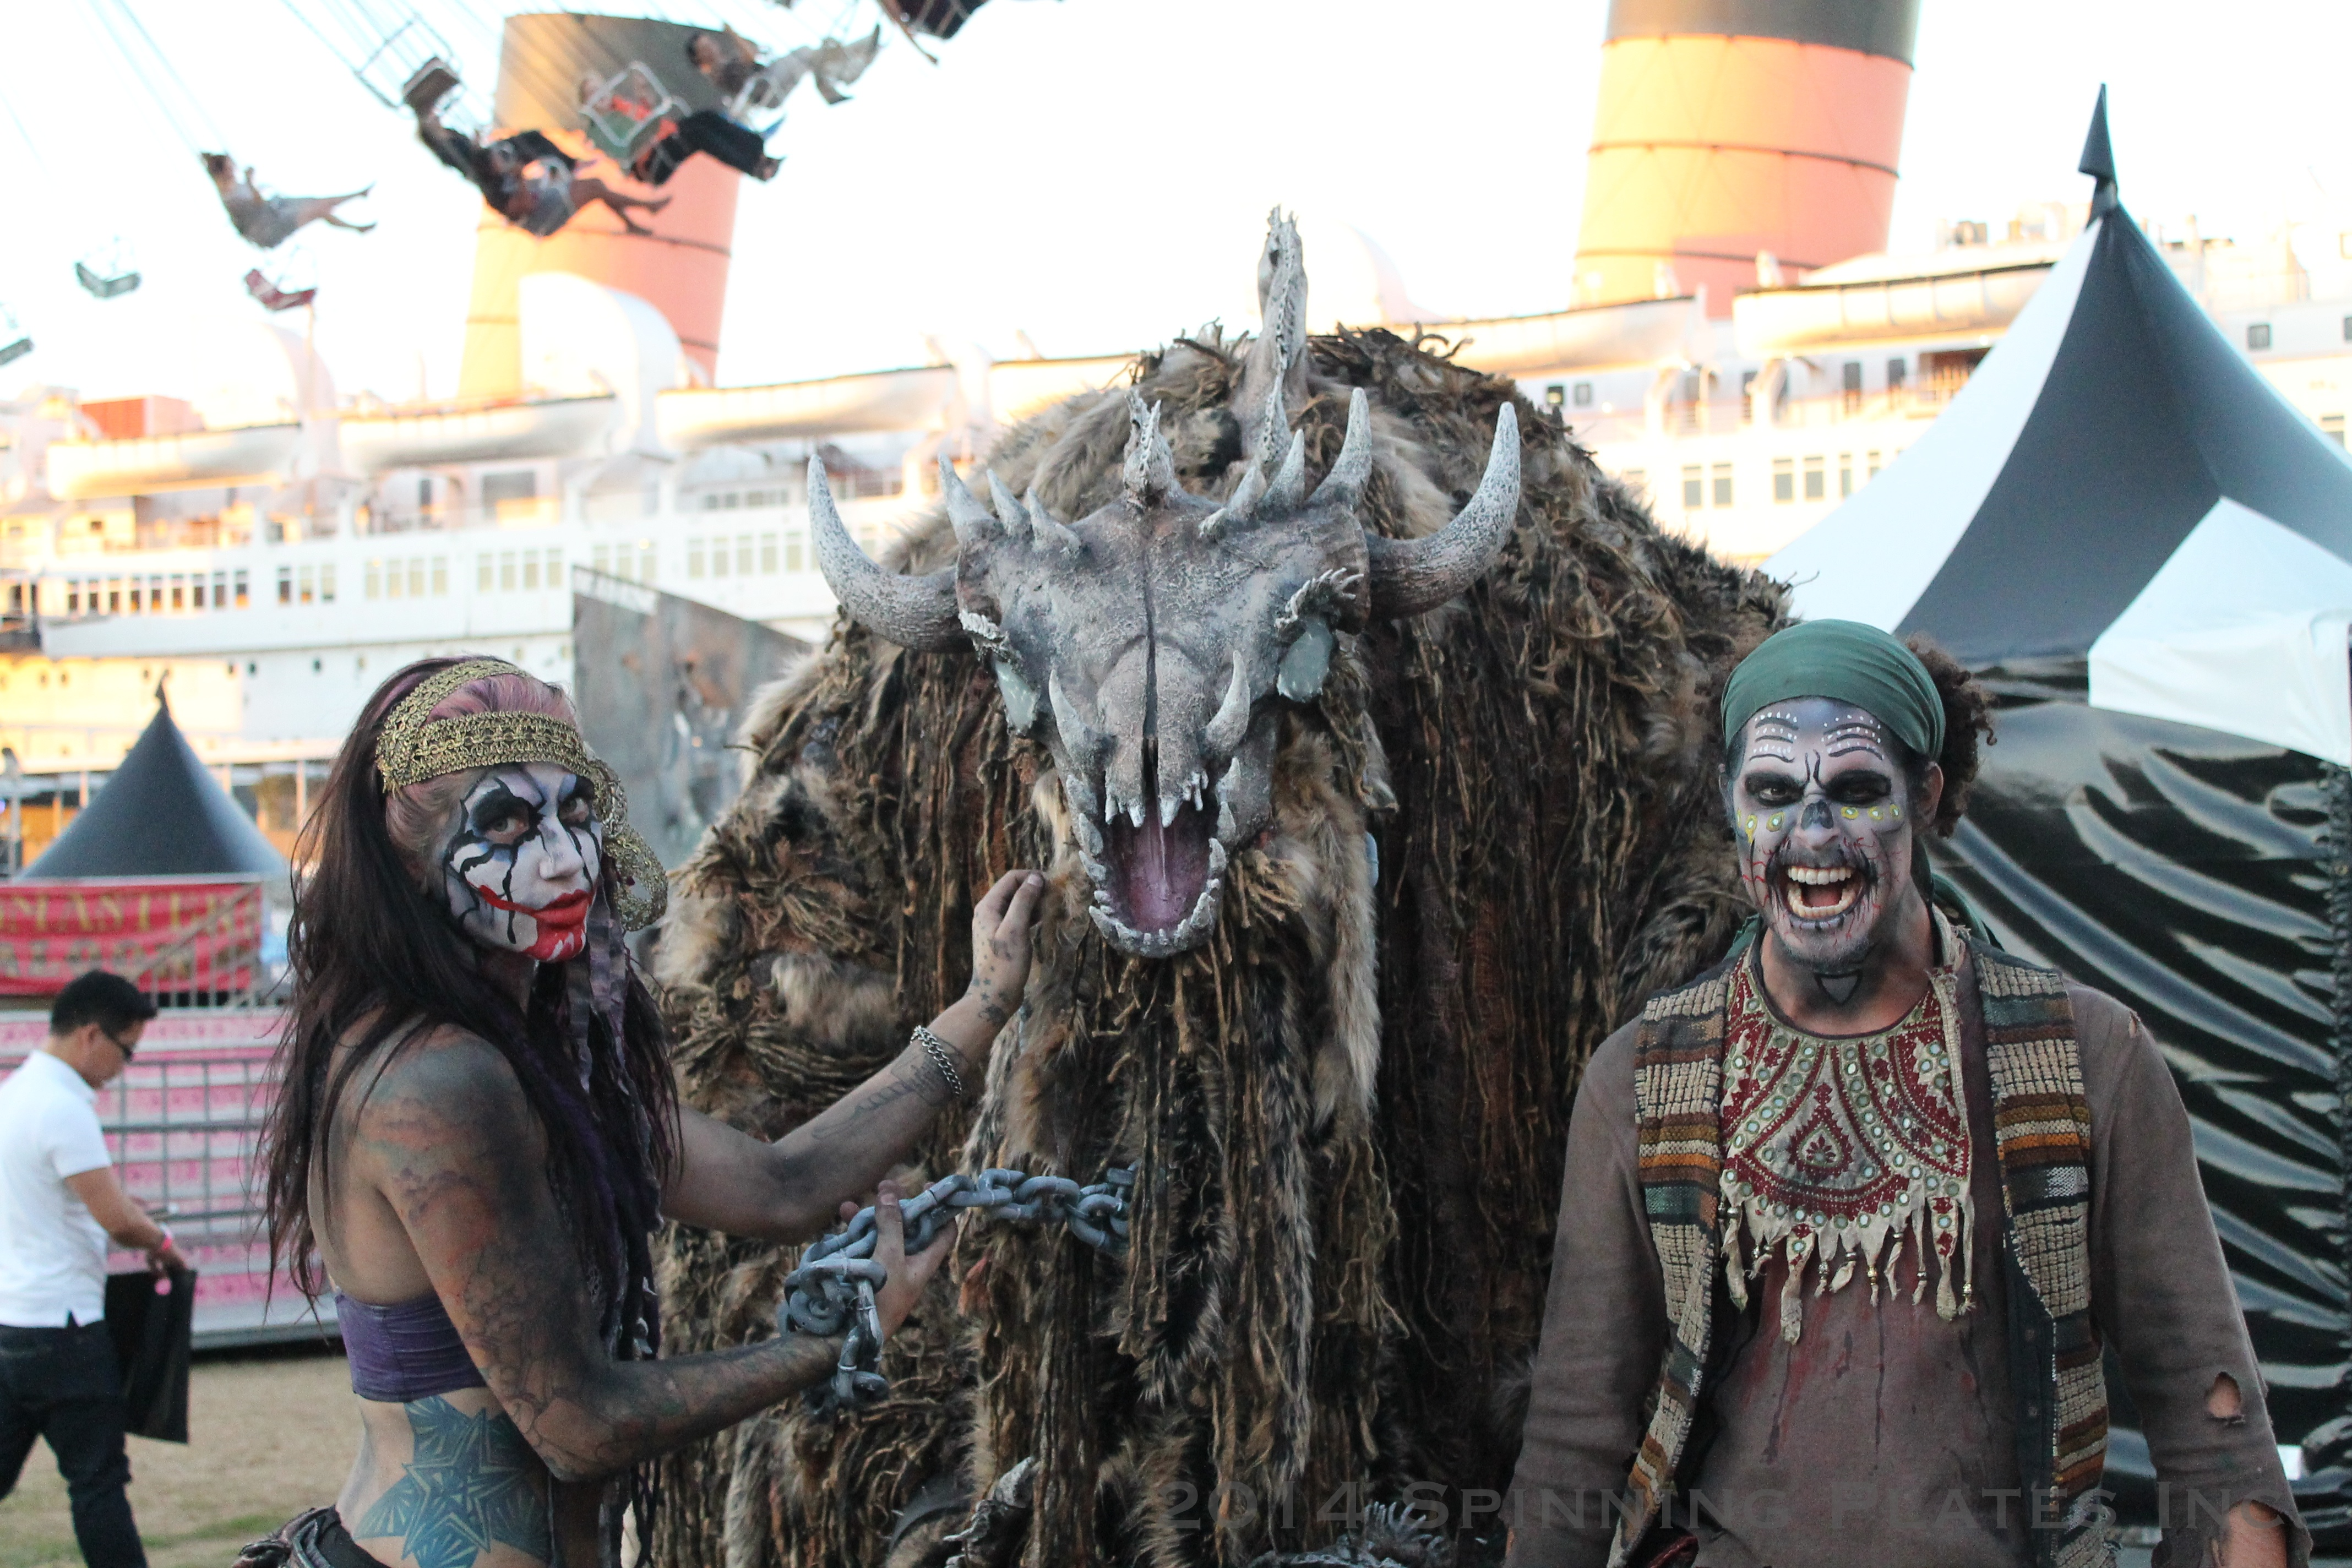 DARK HARBOR at the Queen Mary 2014 | Spinning Plates Inc.